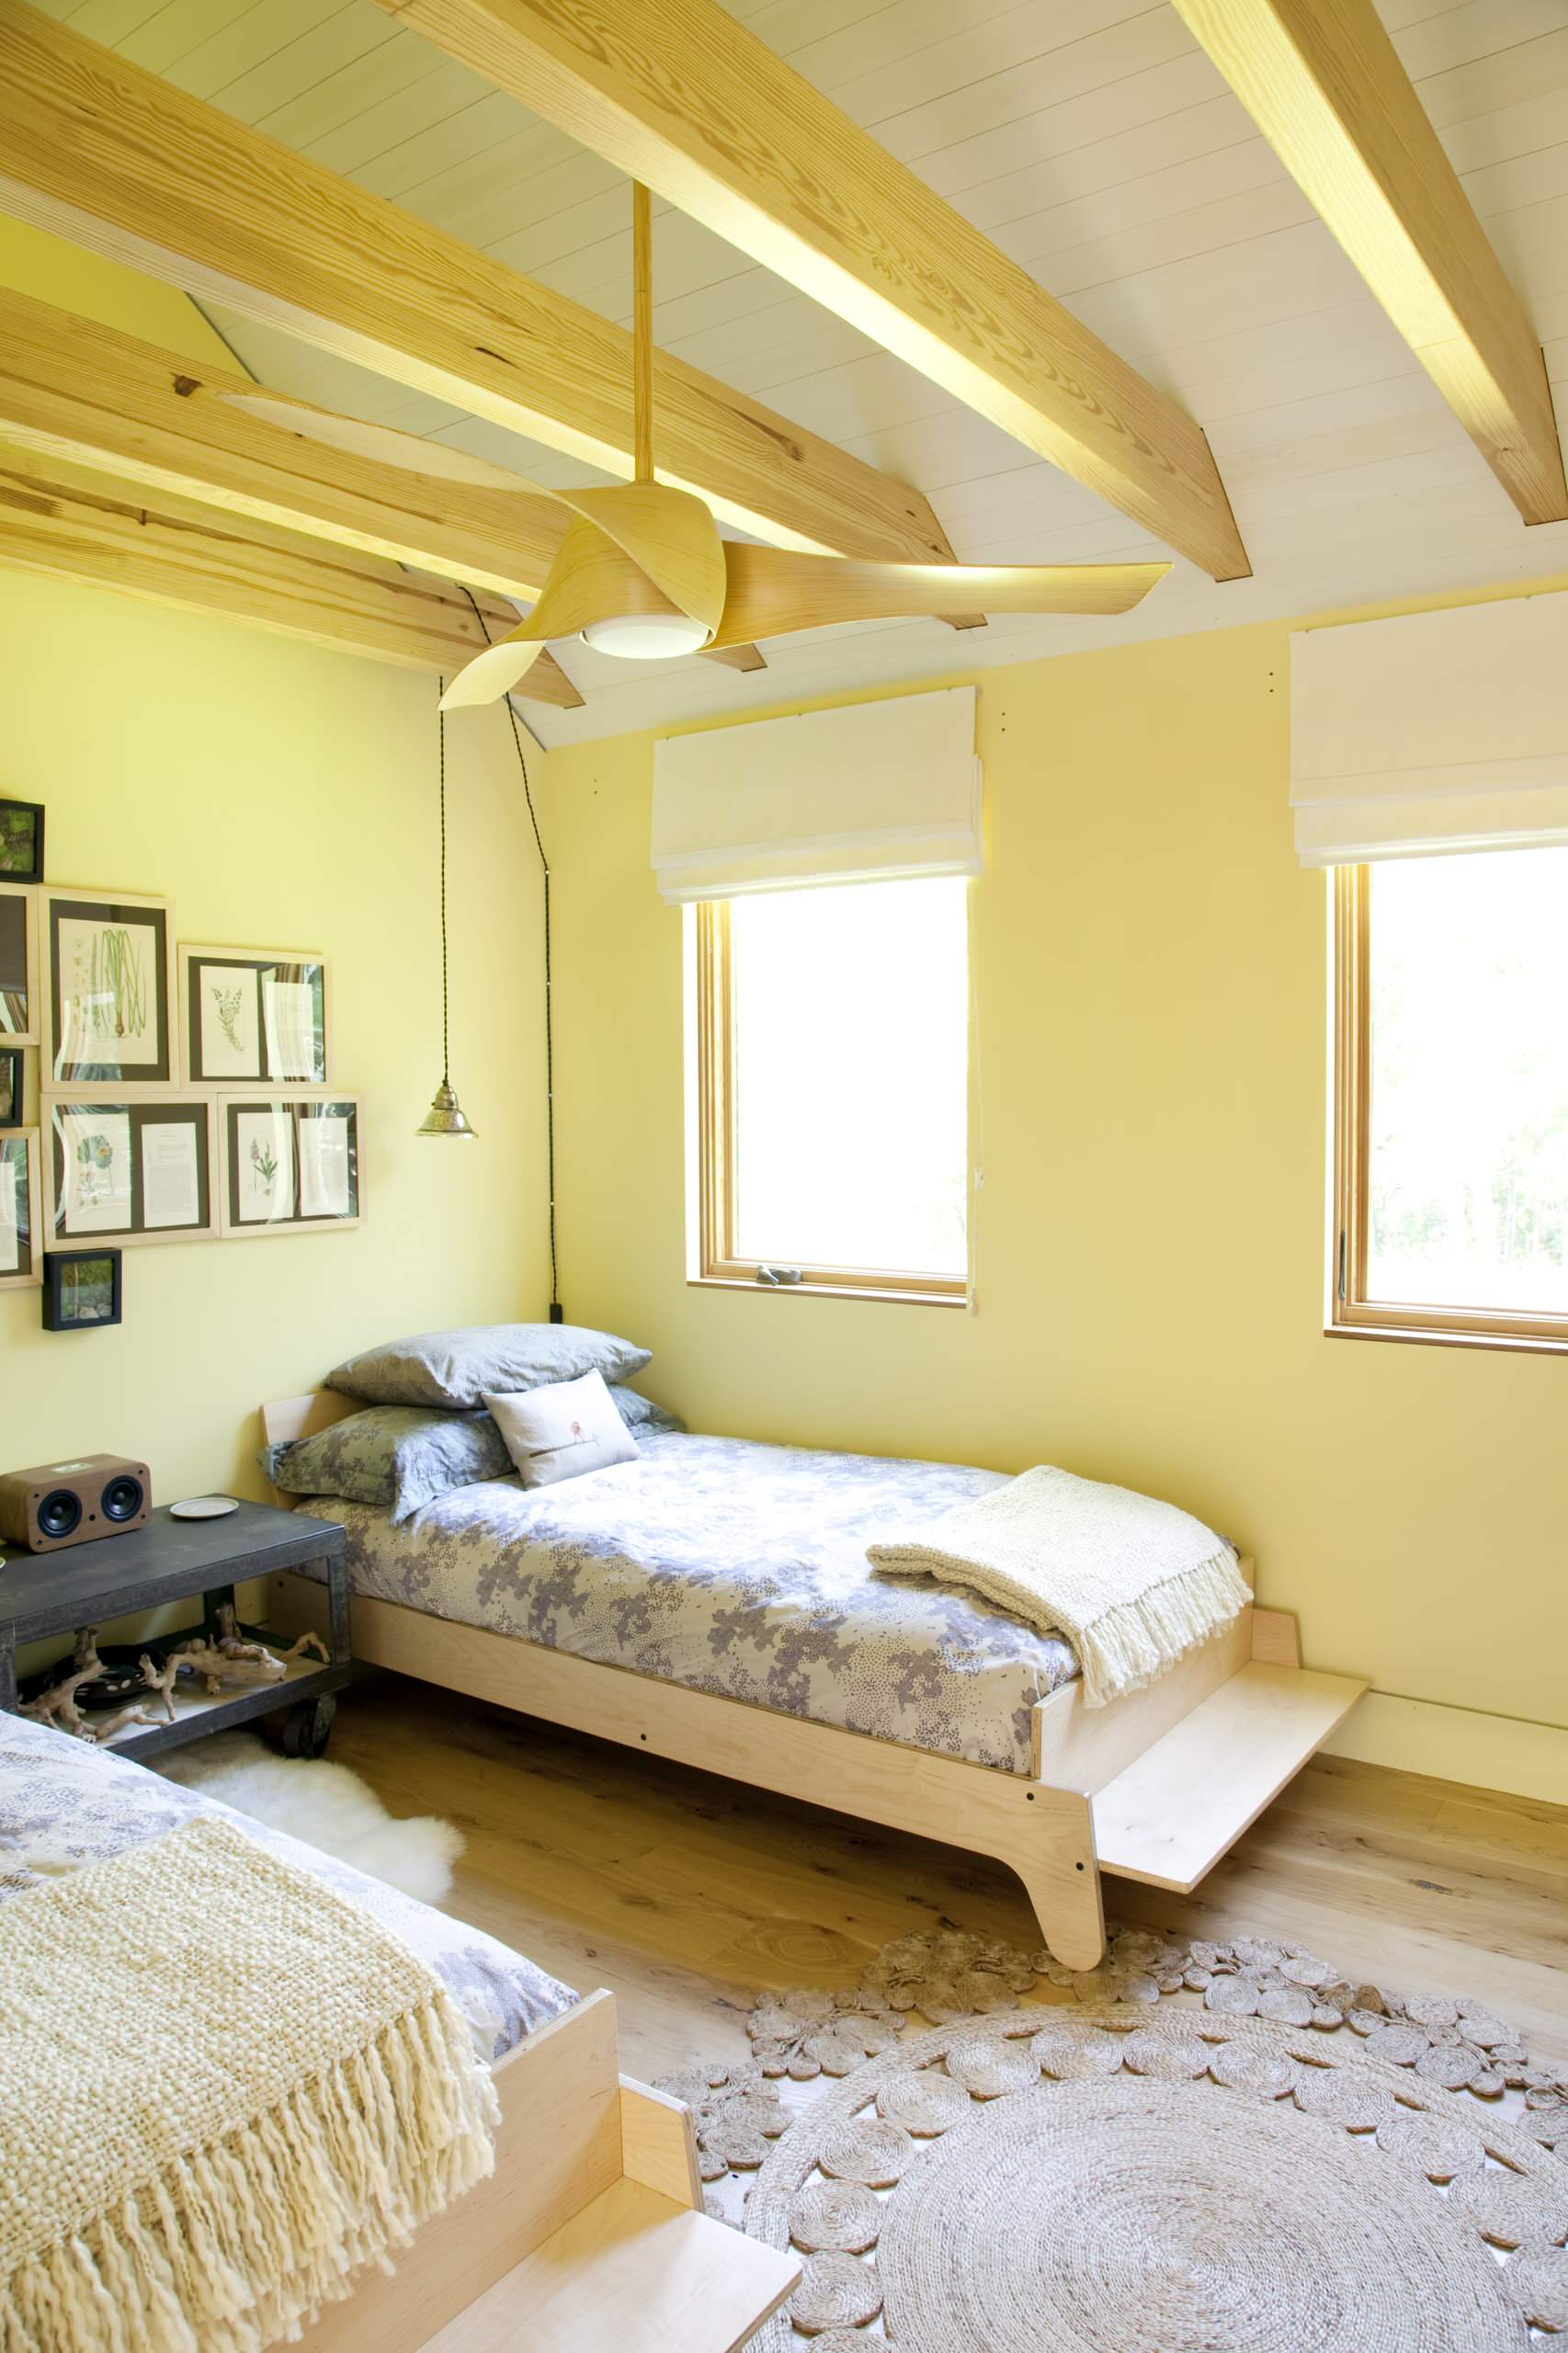 Bedroom: Storage Beds With Ladder Shelves And Wall Sconces For Beach ...